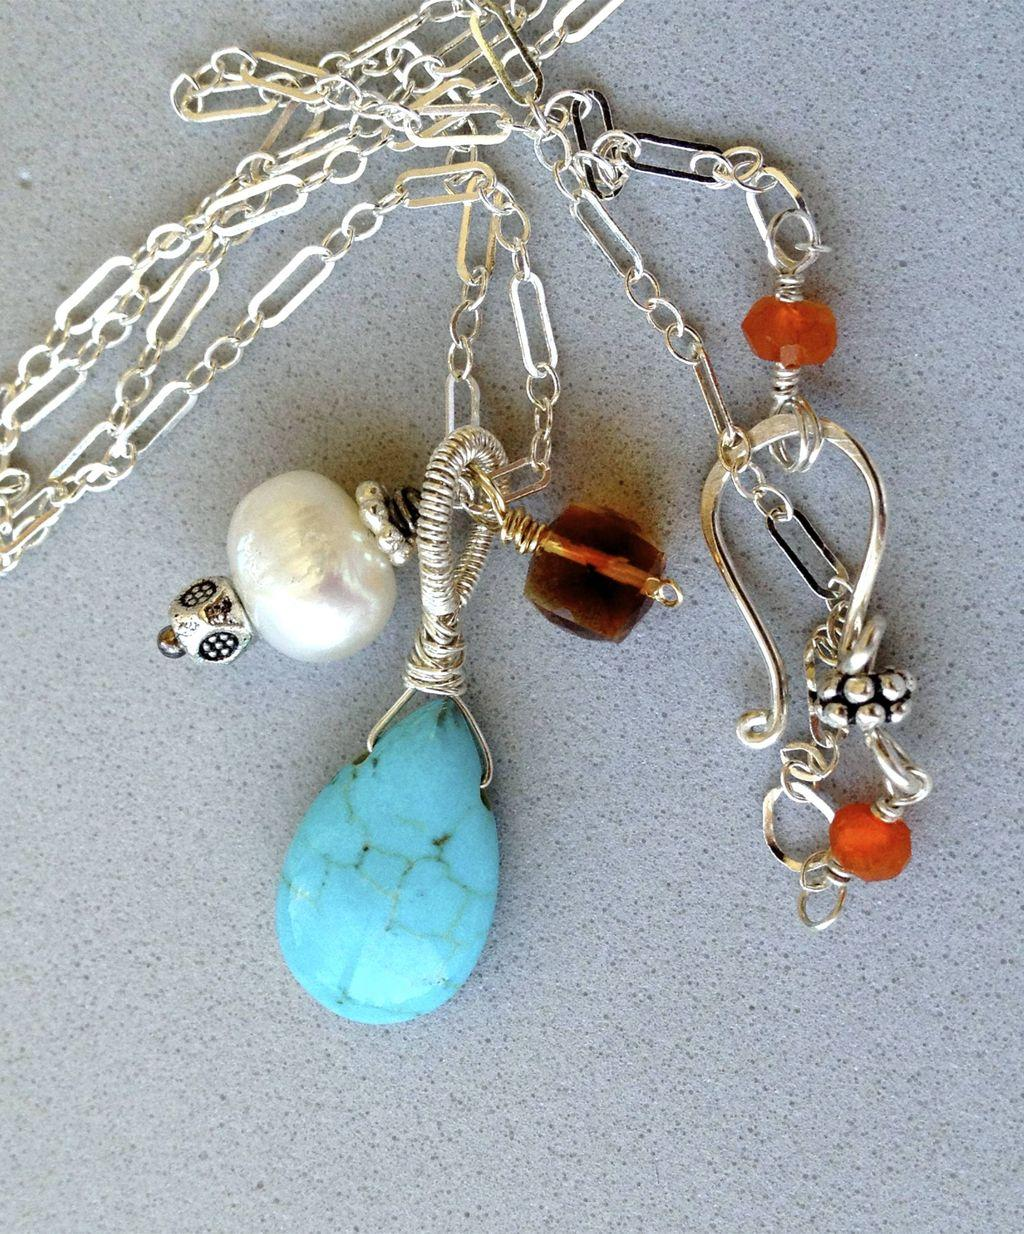 Turquoise Charms Silver Necklace, Madeira Citrine Turquoise pearl 3 charm Silver pendant necklace Camp Sundance